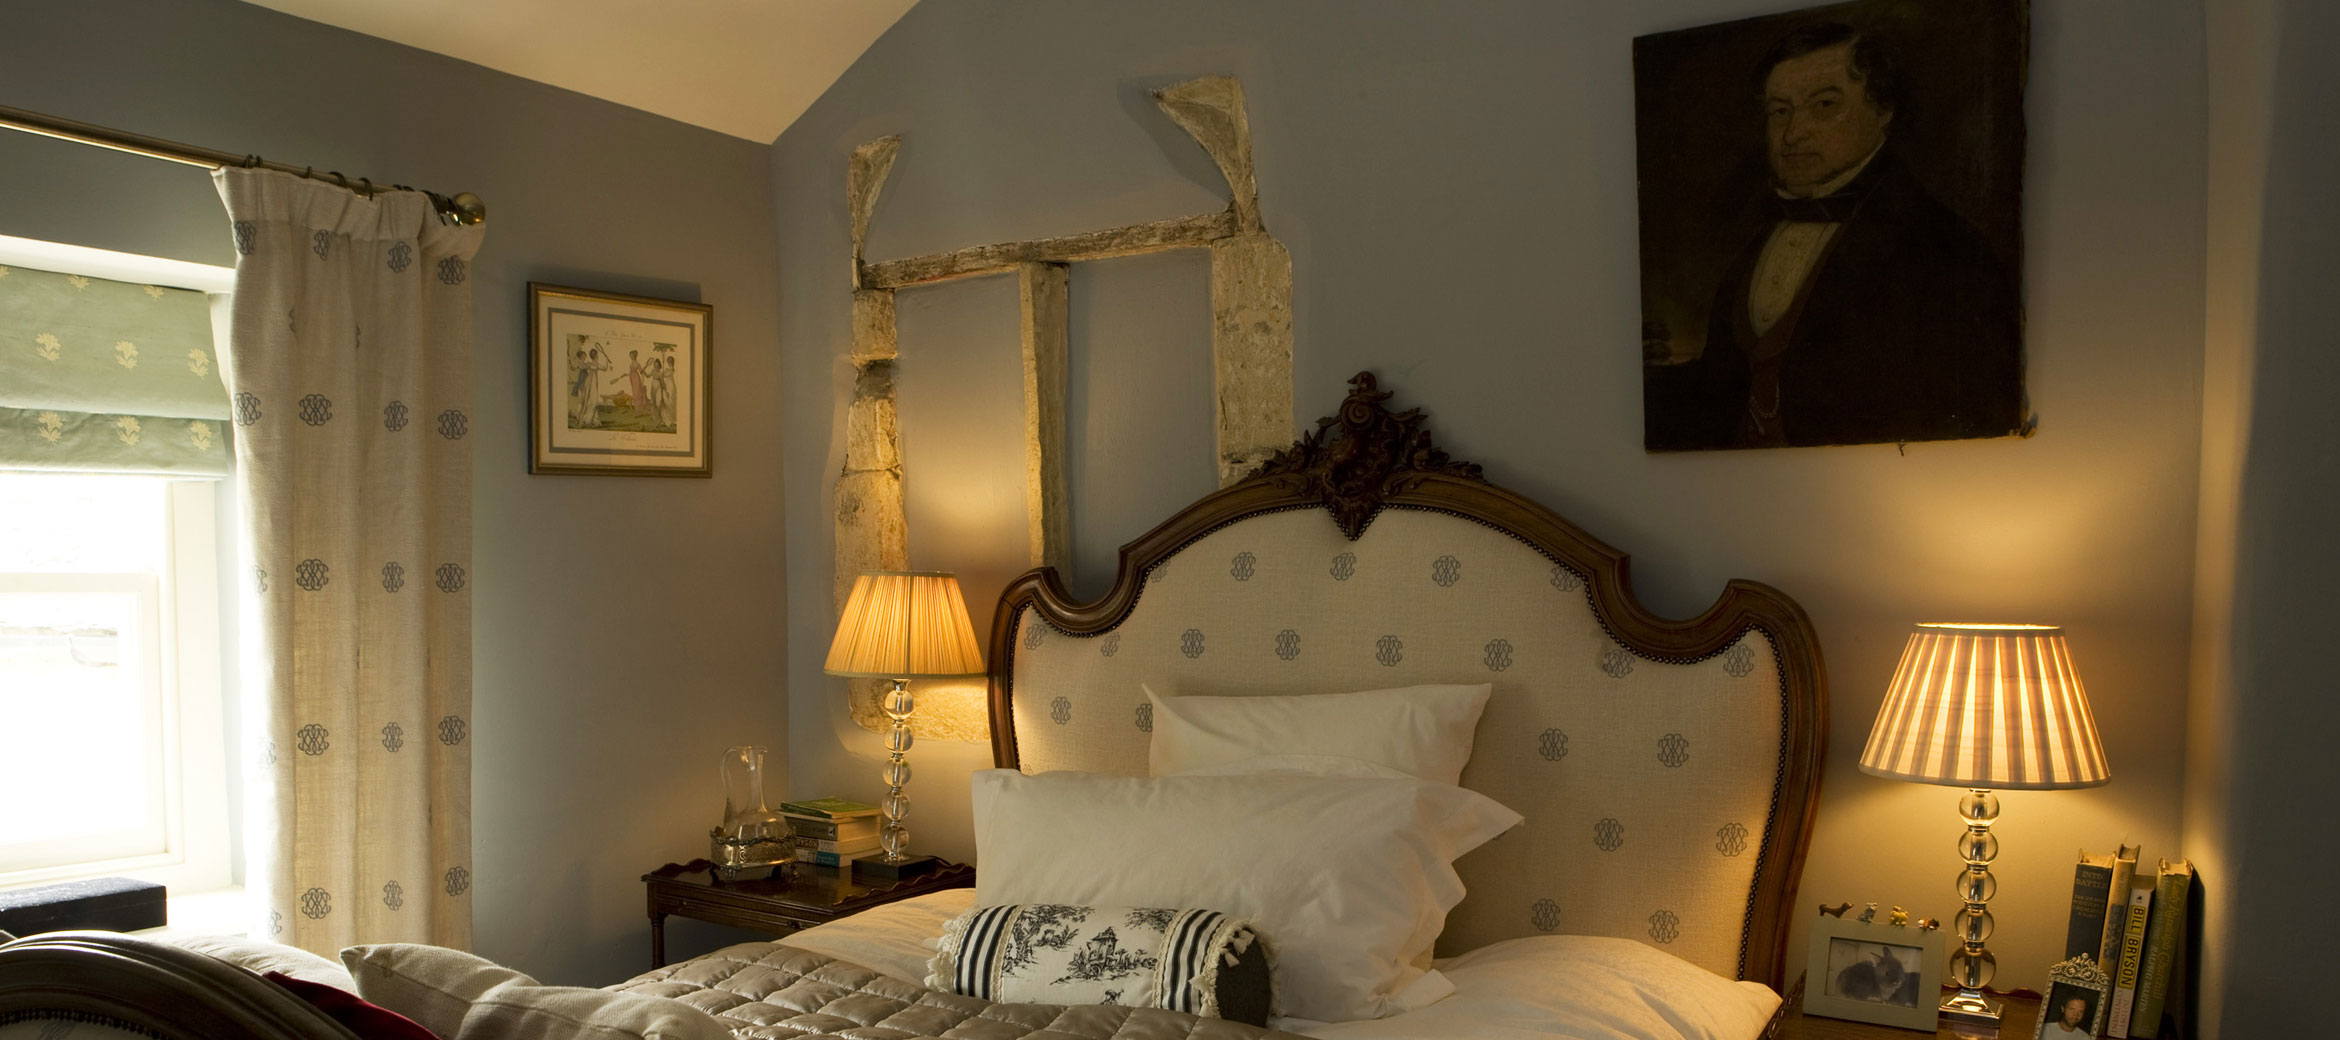 Singer-House-chipping-campden-bedroom